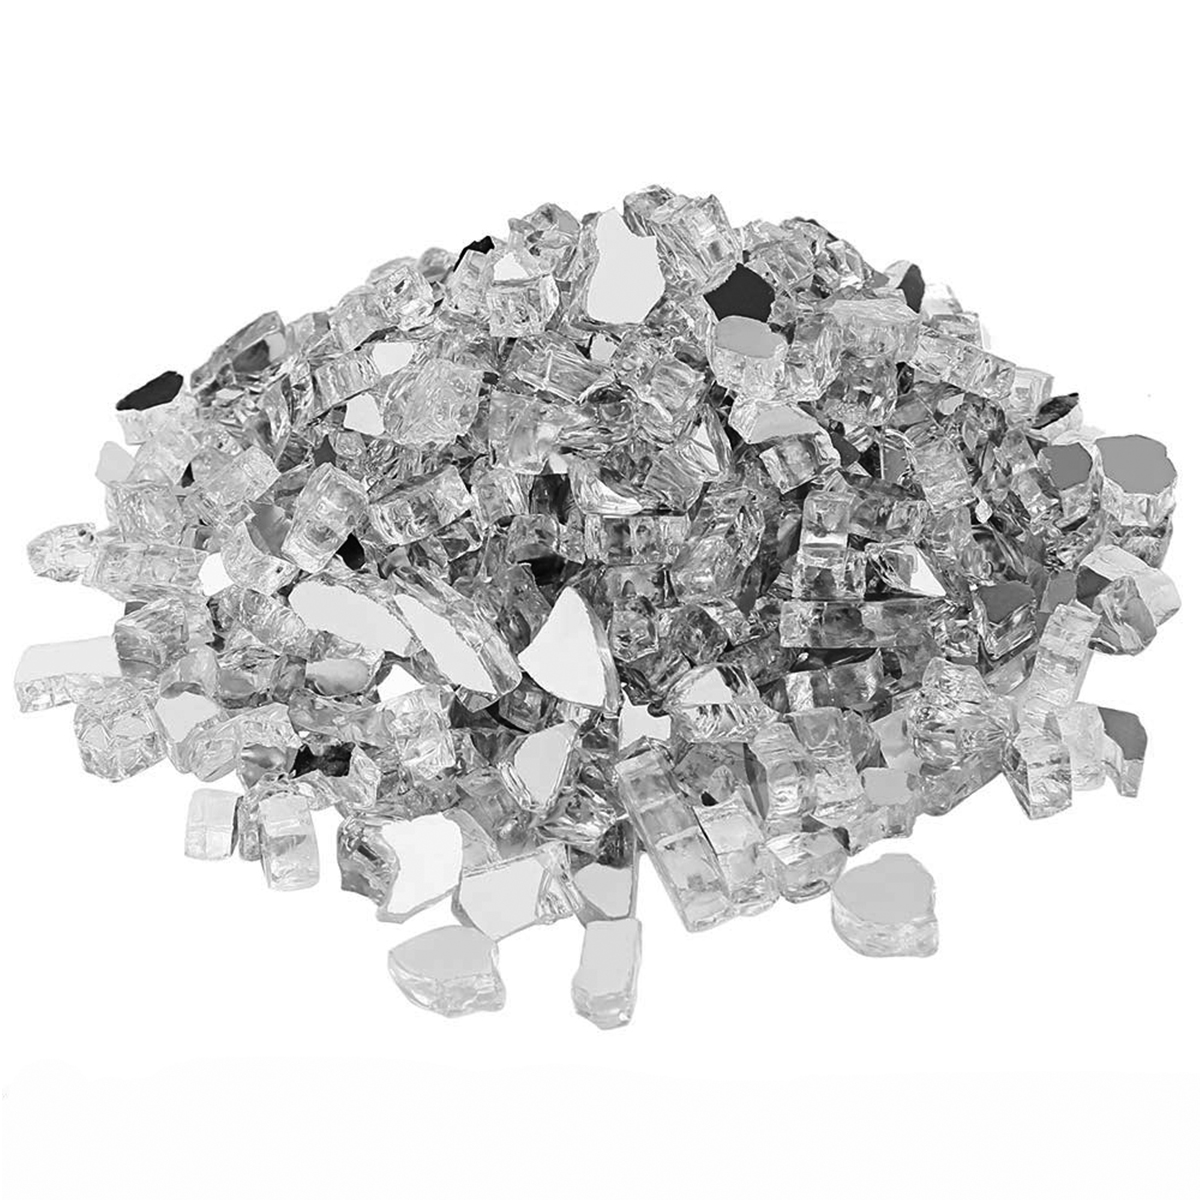 Hisencn Ultra White Fire Glass, 1.8KG And 1/2 Inch High Luster Reflective Tempered Glass Rocks For Natural Or Propane Fireplace